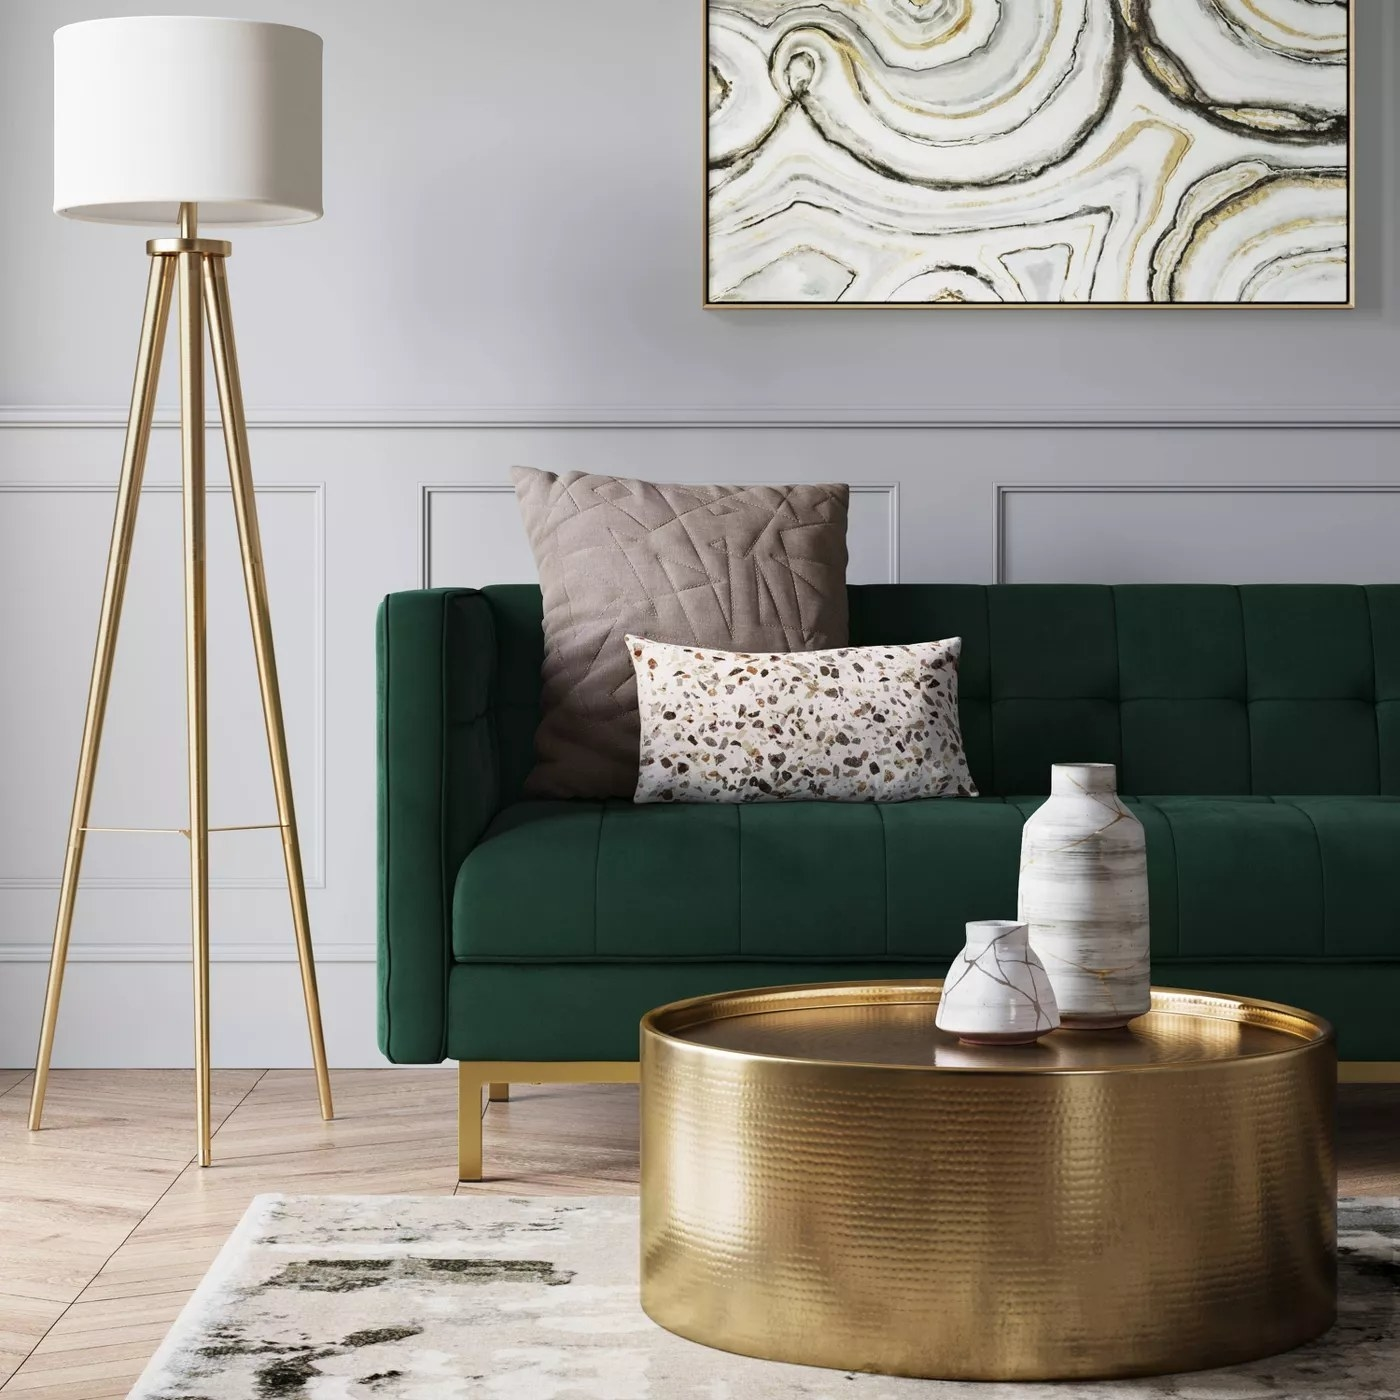 The sofa with a tufted back, seat, and sides as well as brass legs in a living room